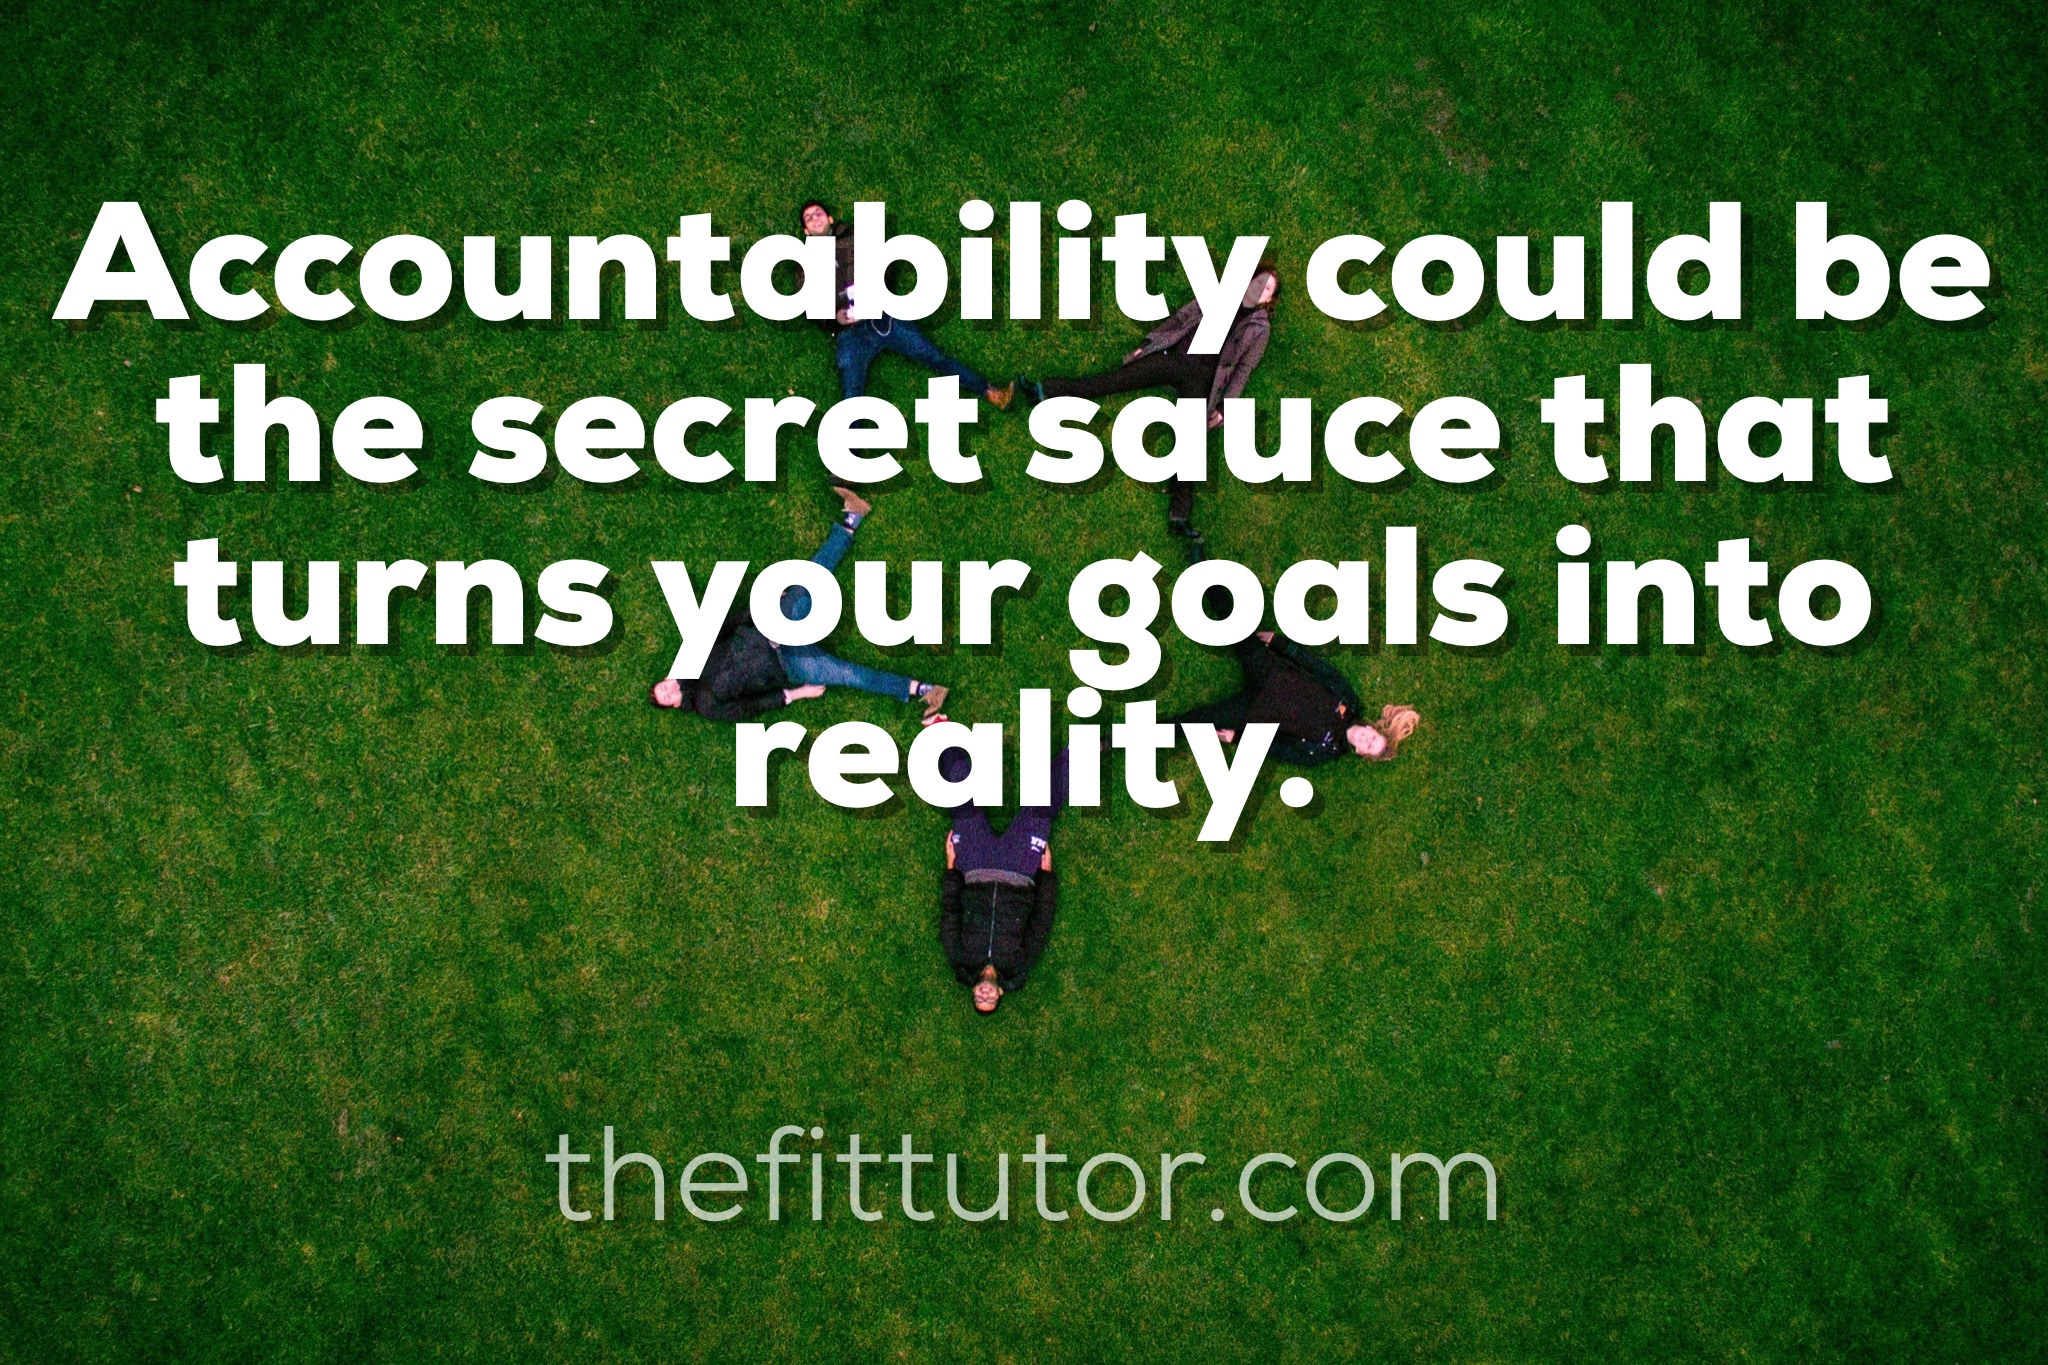 #3. Accountability: 4 practical tips for fighting stress eating that you can start NOW